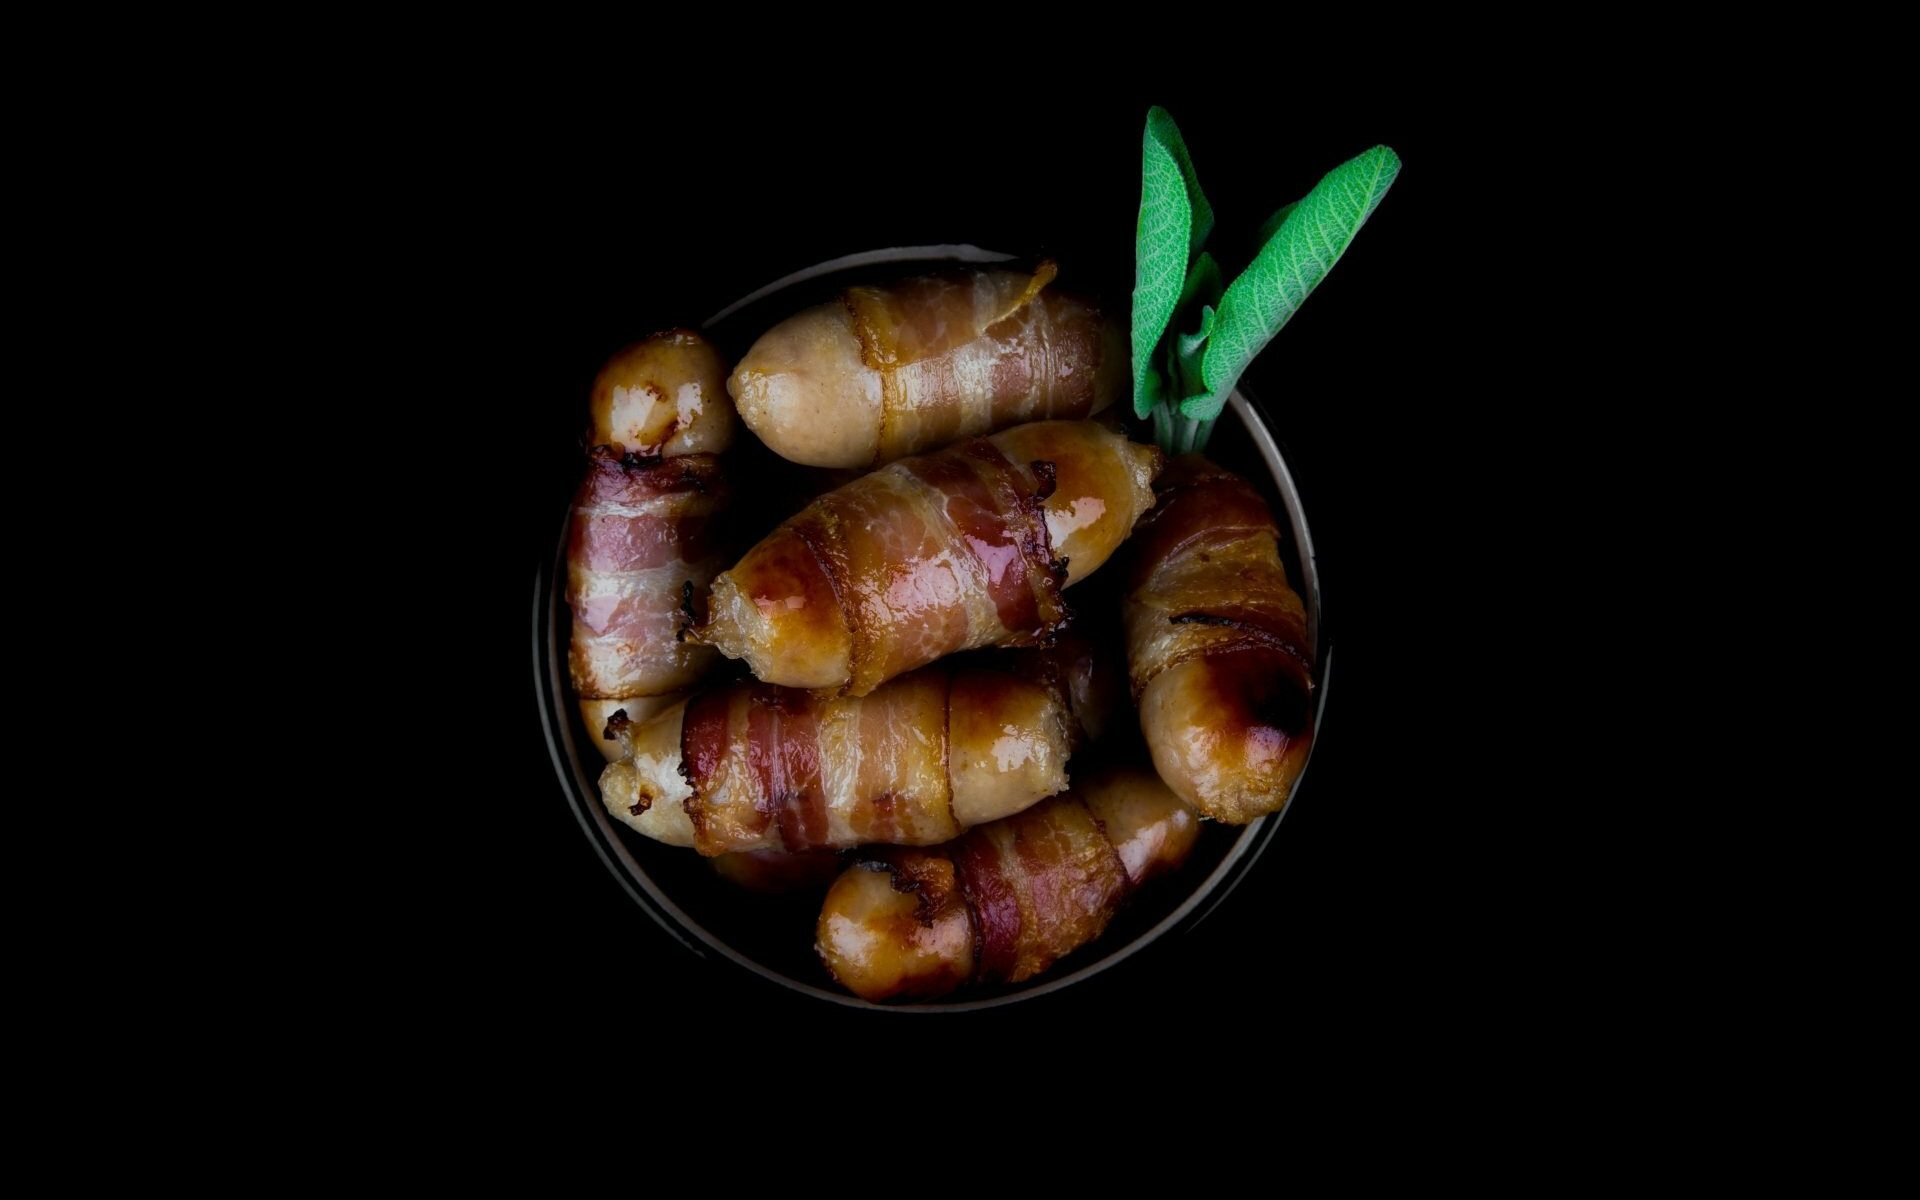 Plate of Chipolatas Wrapped in Streaky Bacon